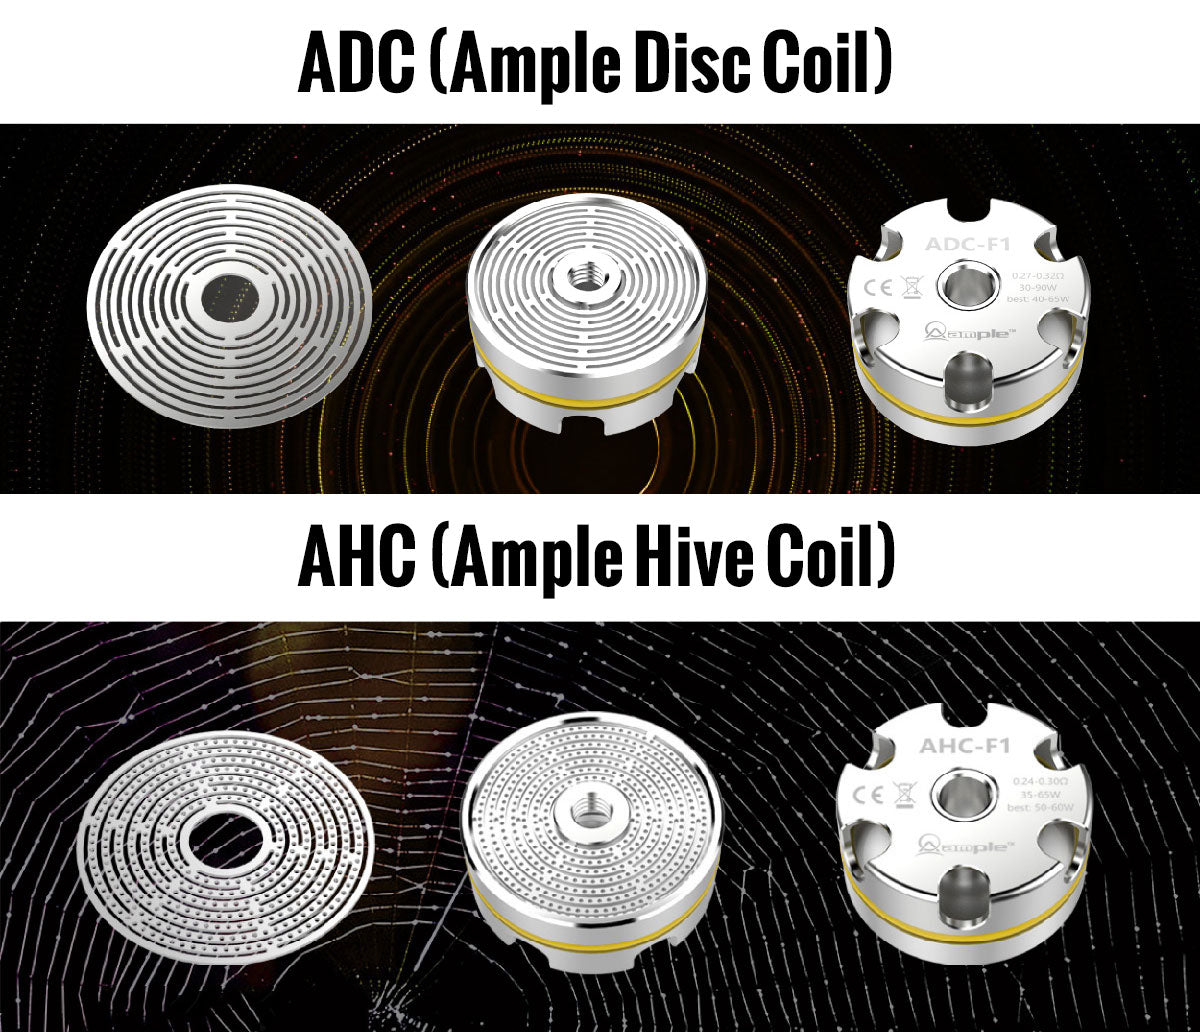 Ample Mace Tank Replacement ADC/AHC Coil Review